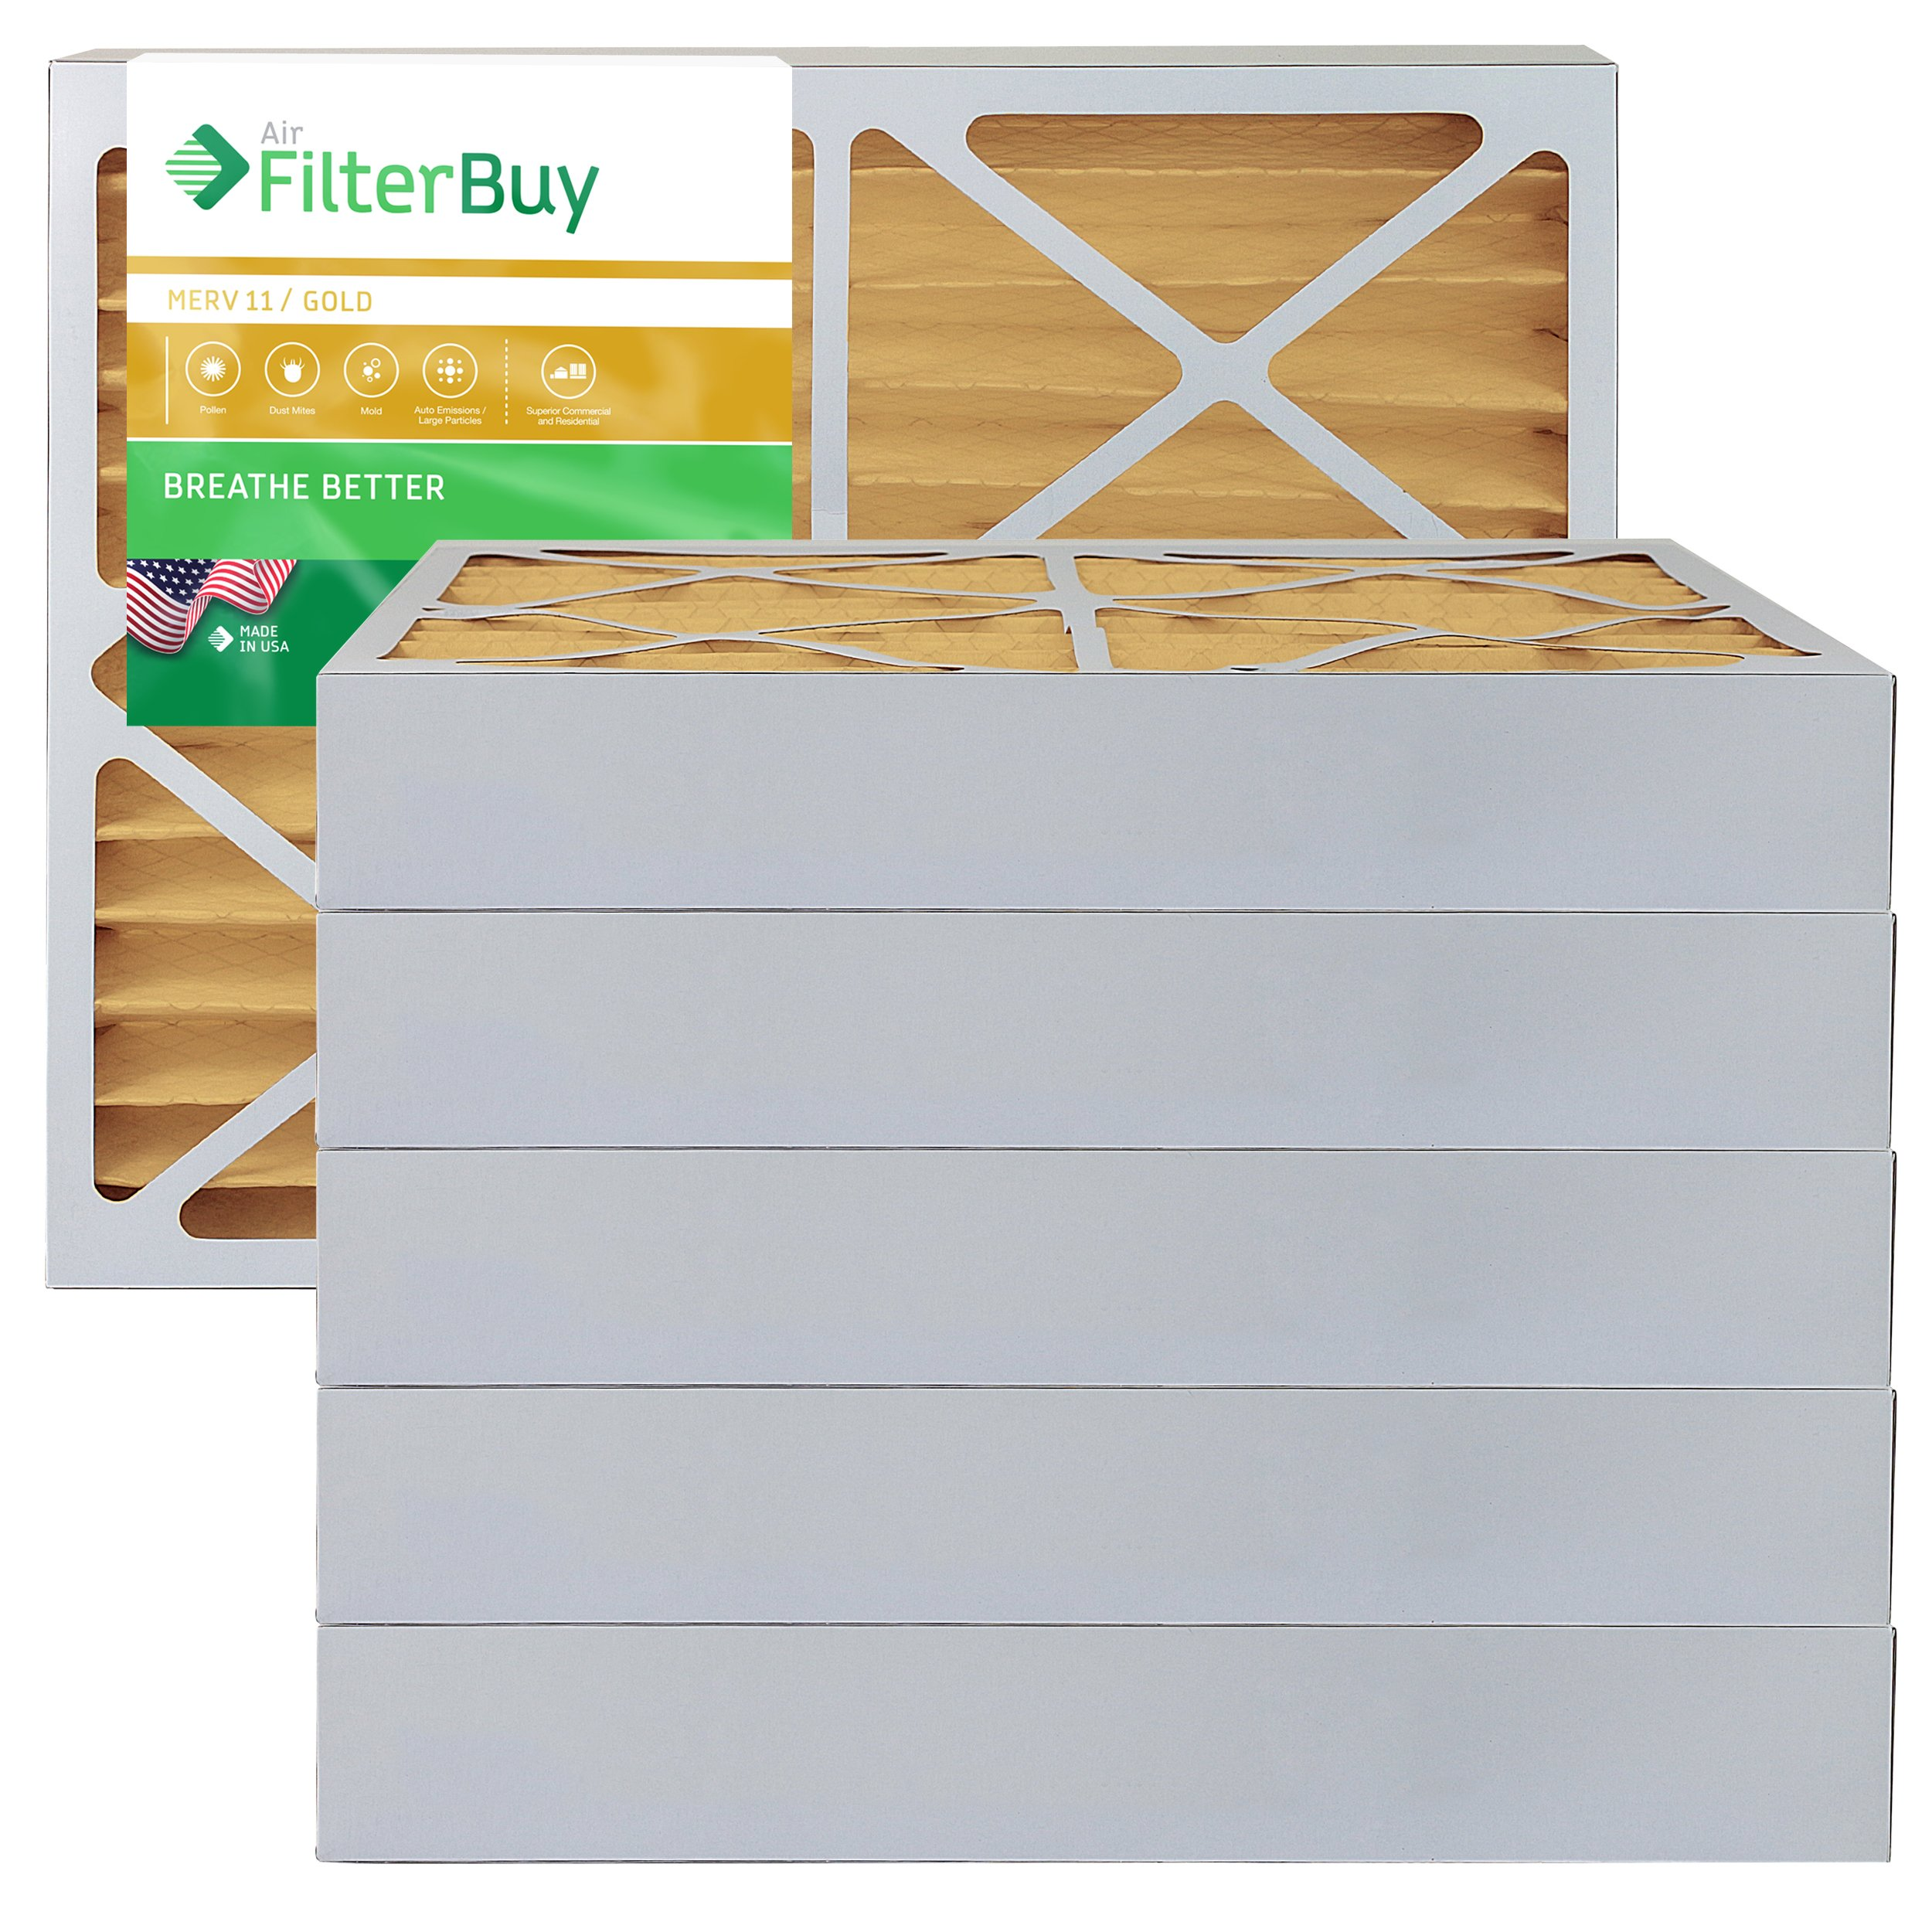 AFB Gold MERV 11 25x25x4 Pleated AC Furnace Air Filter. Pack of 6 Filters. 100% produced in the USA.